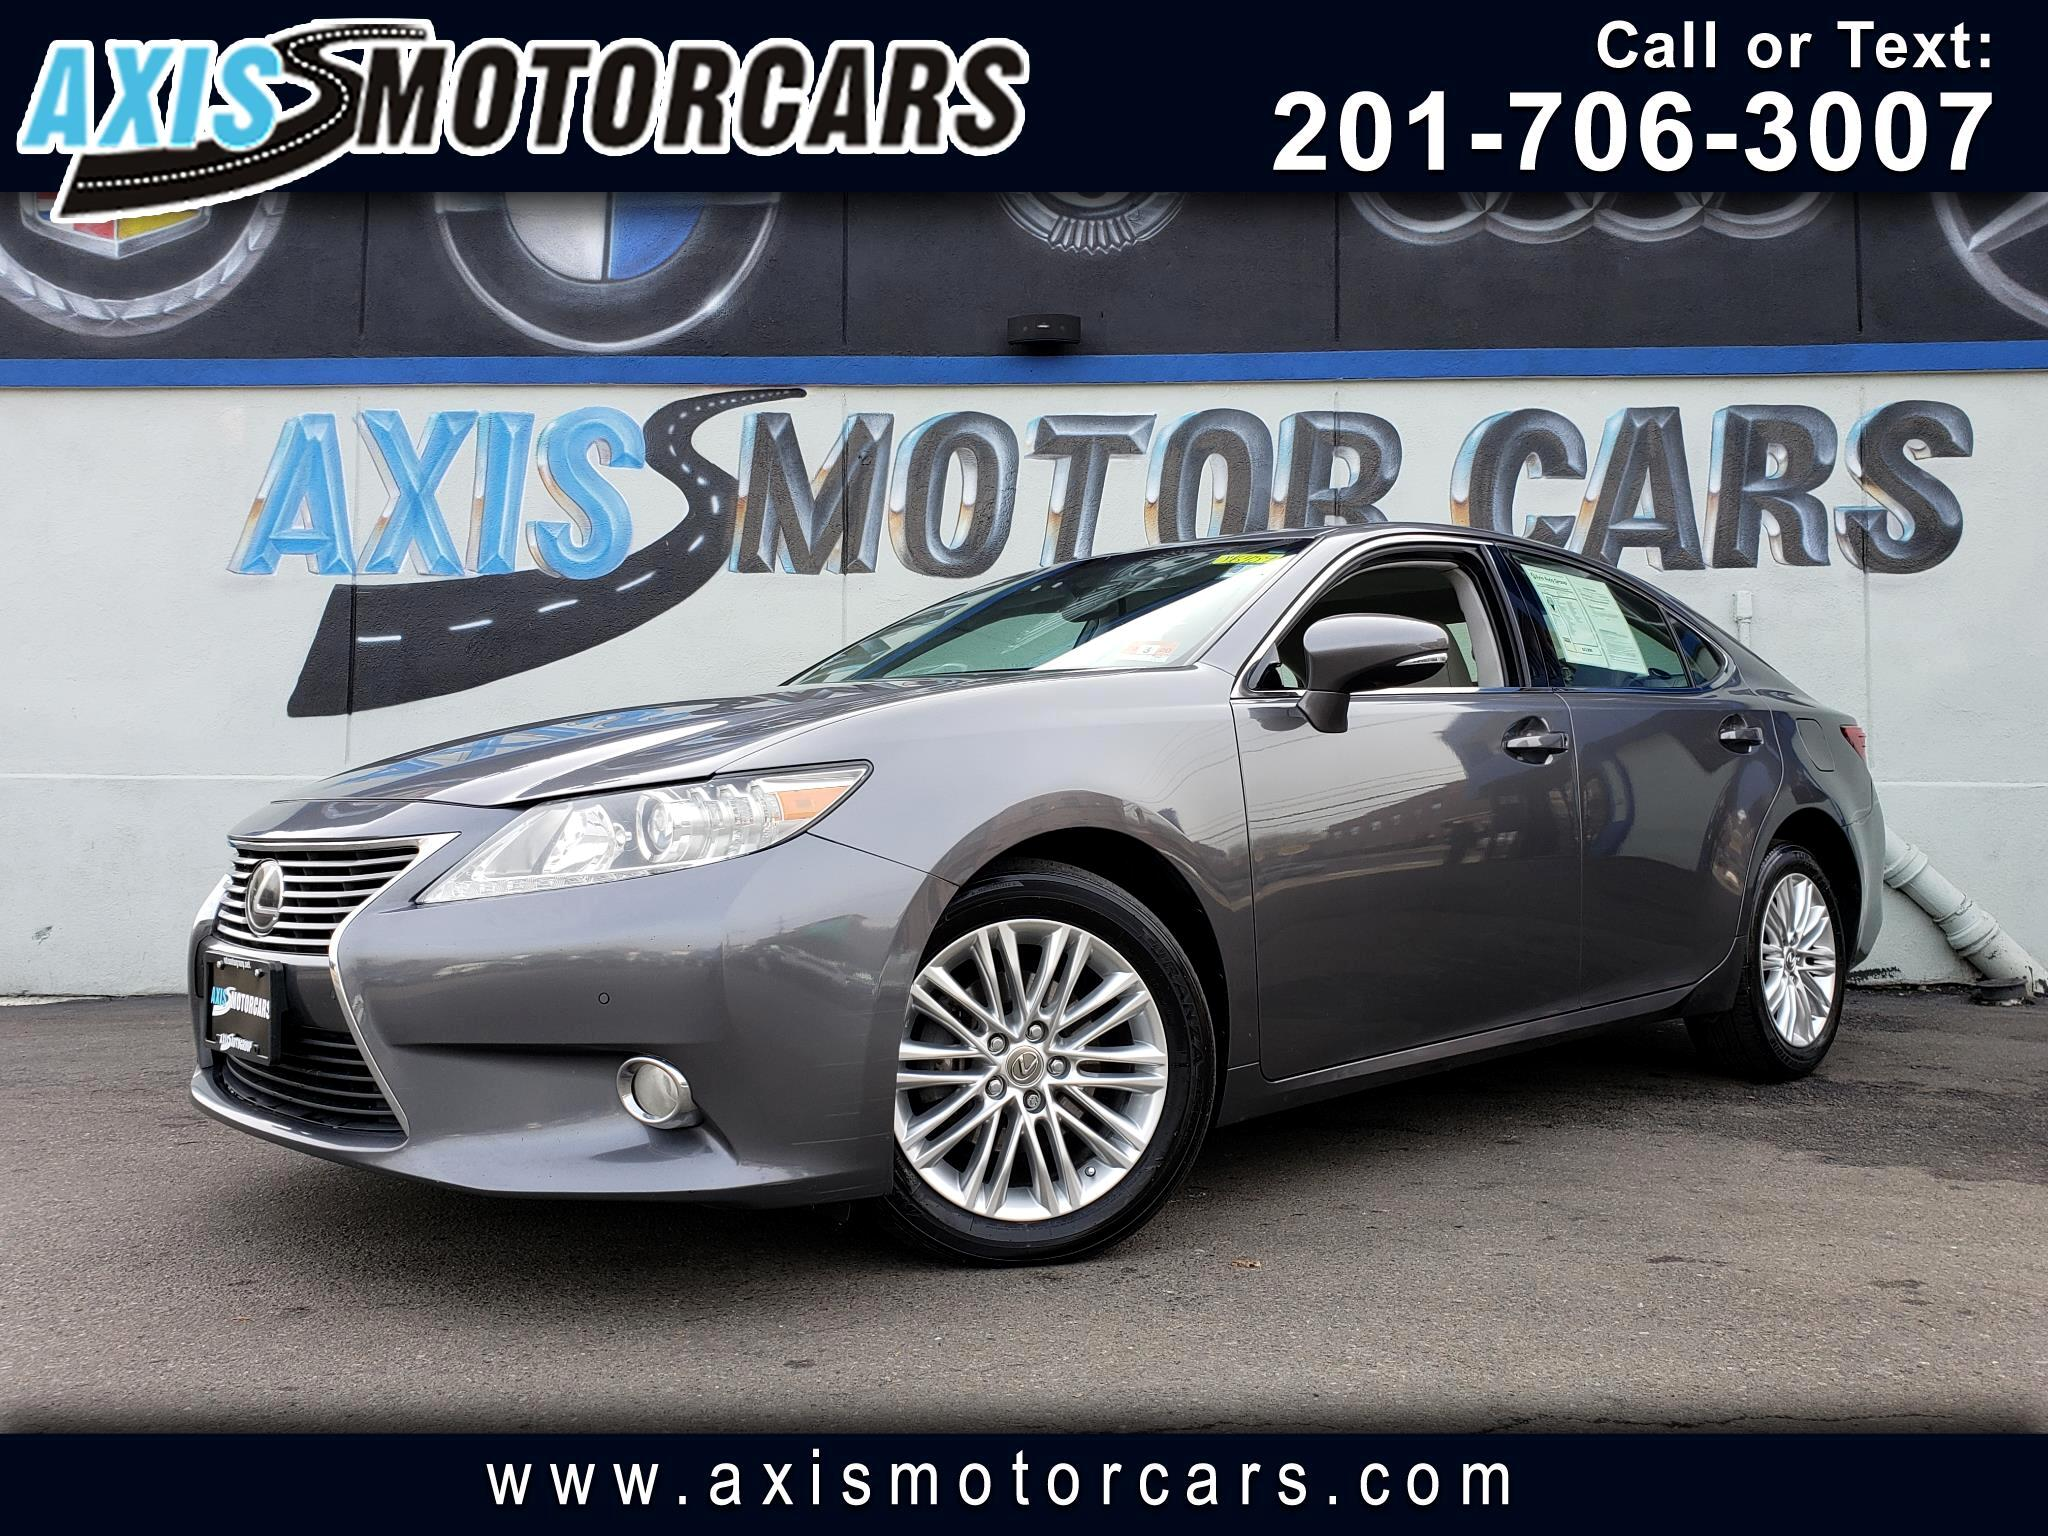 2013 Lexus ES 350 W/Navigation Bakup Camera Sun Roof